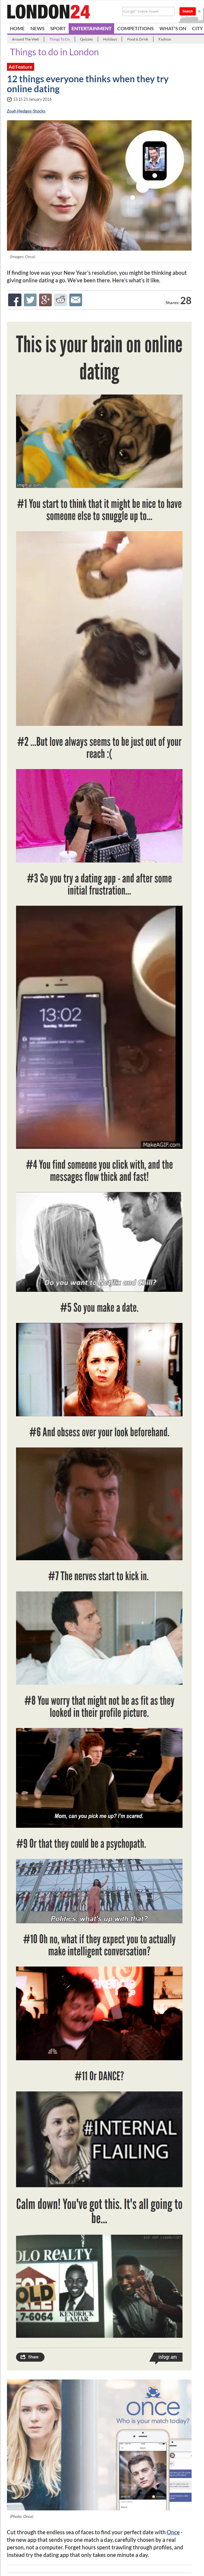 12 things everyone thinks when they try online dating   Things to do   London 24.png